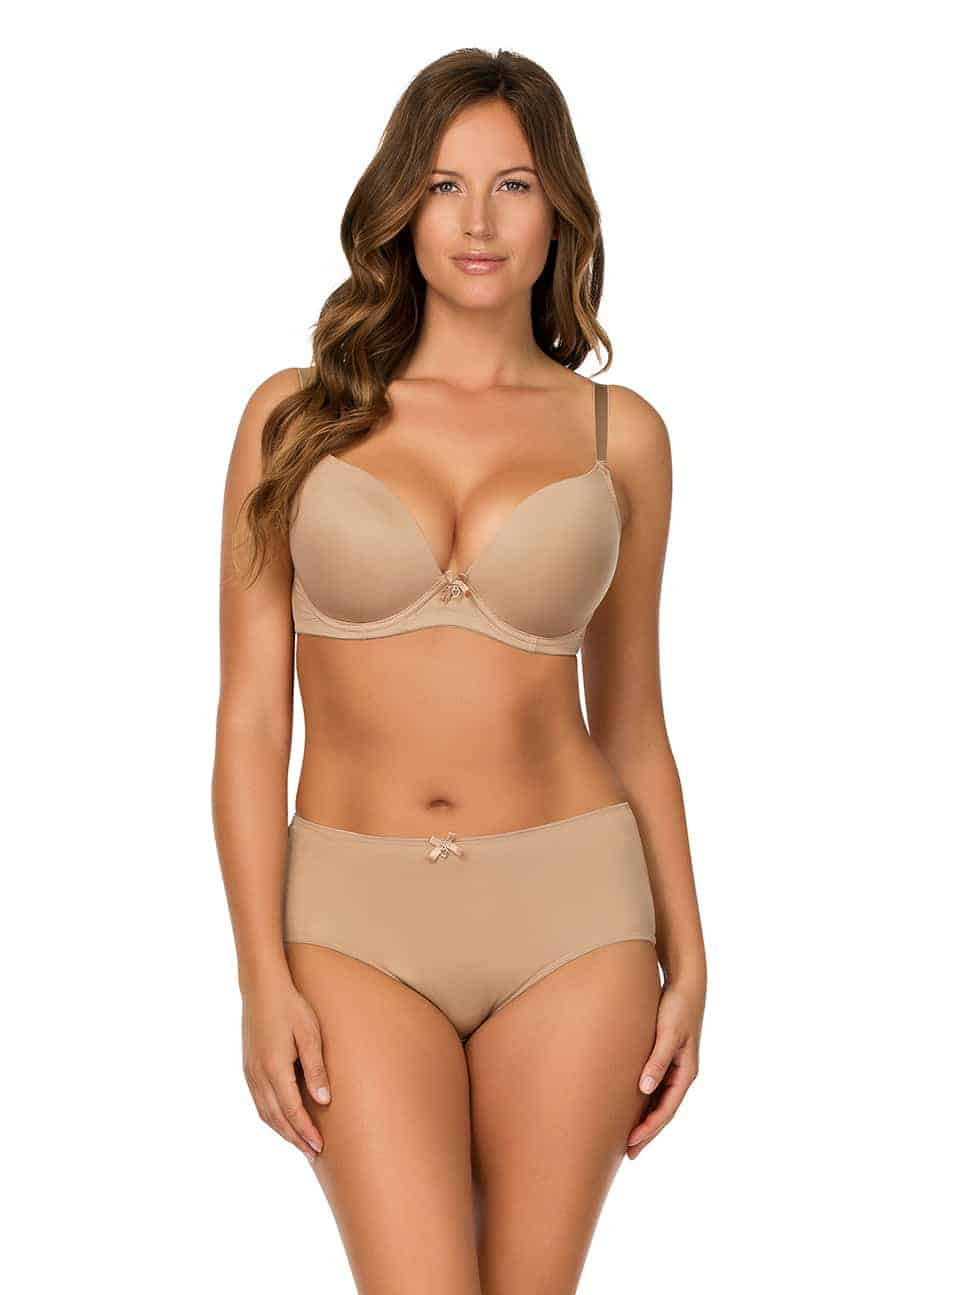 Jeanie PlungeMoldedBra4801 HighCutBrief4803 EuropeanNude - Jeanie High-Cut Brief - European Nude - 4803